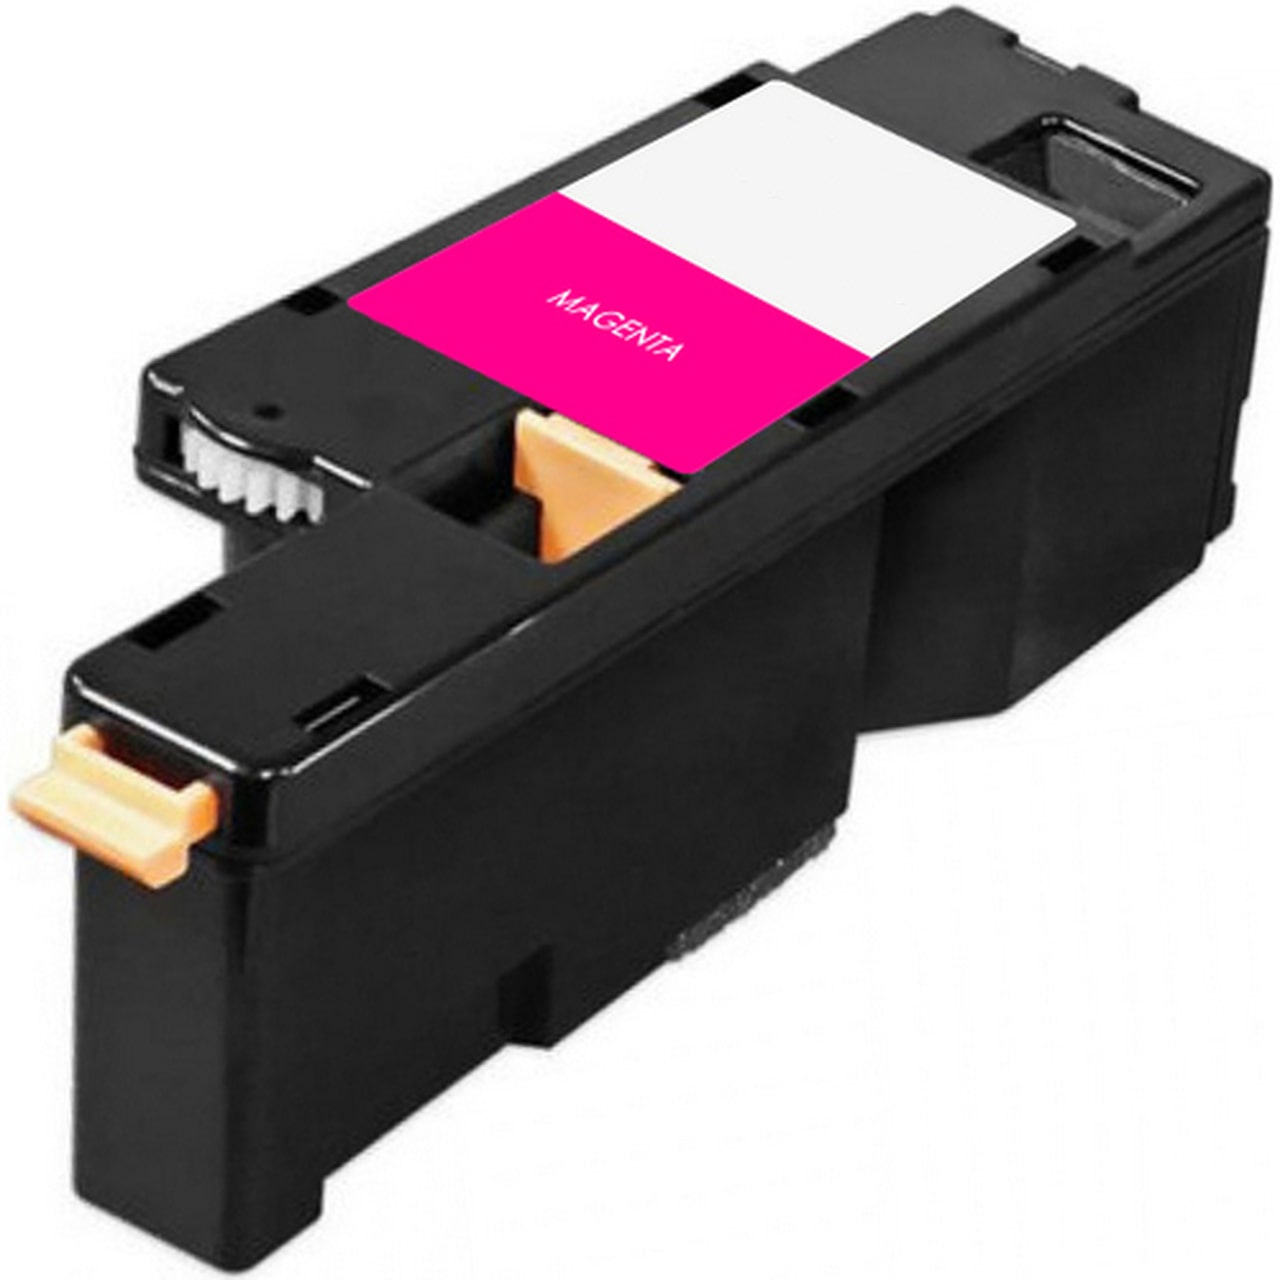 332-0401 Toner Cartridge - Dell Compatible (Magenta)